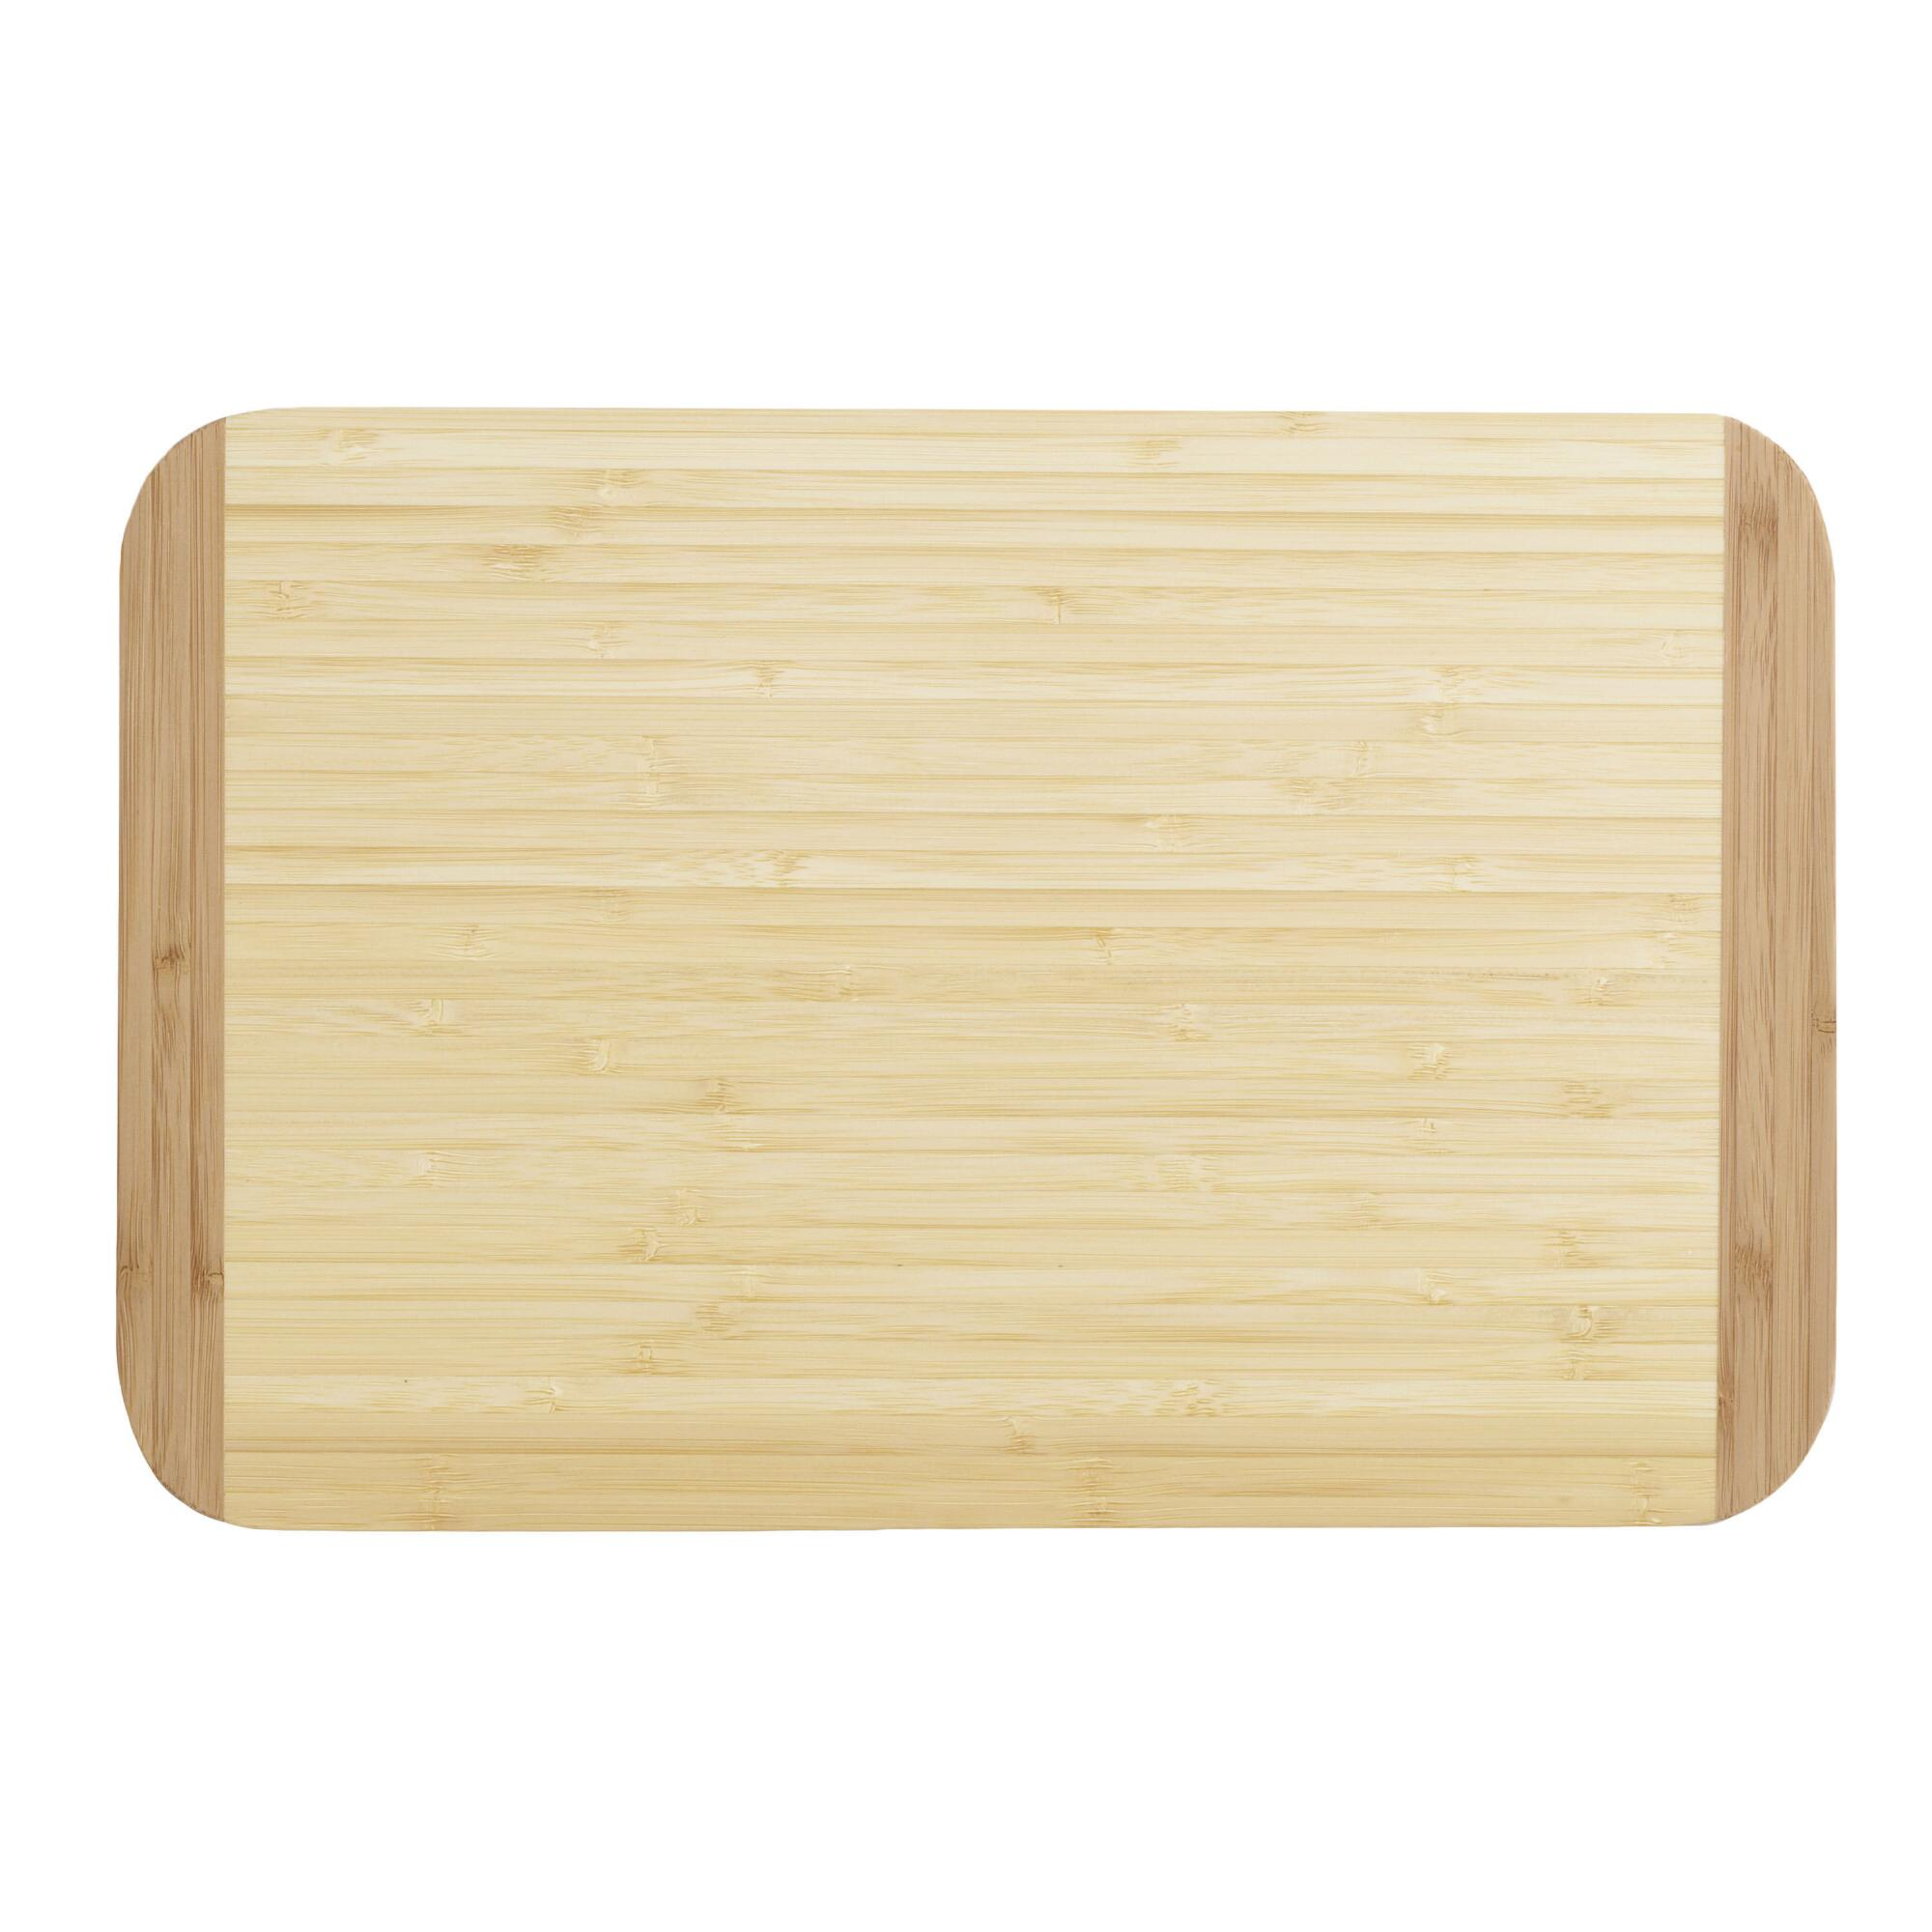 Cutting Board: Home Design And Decor Reviews